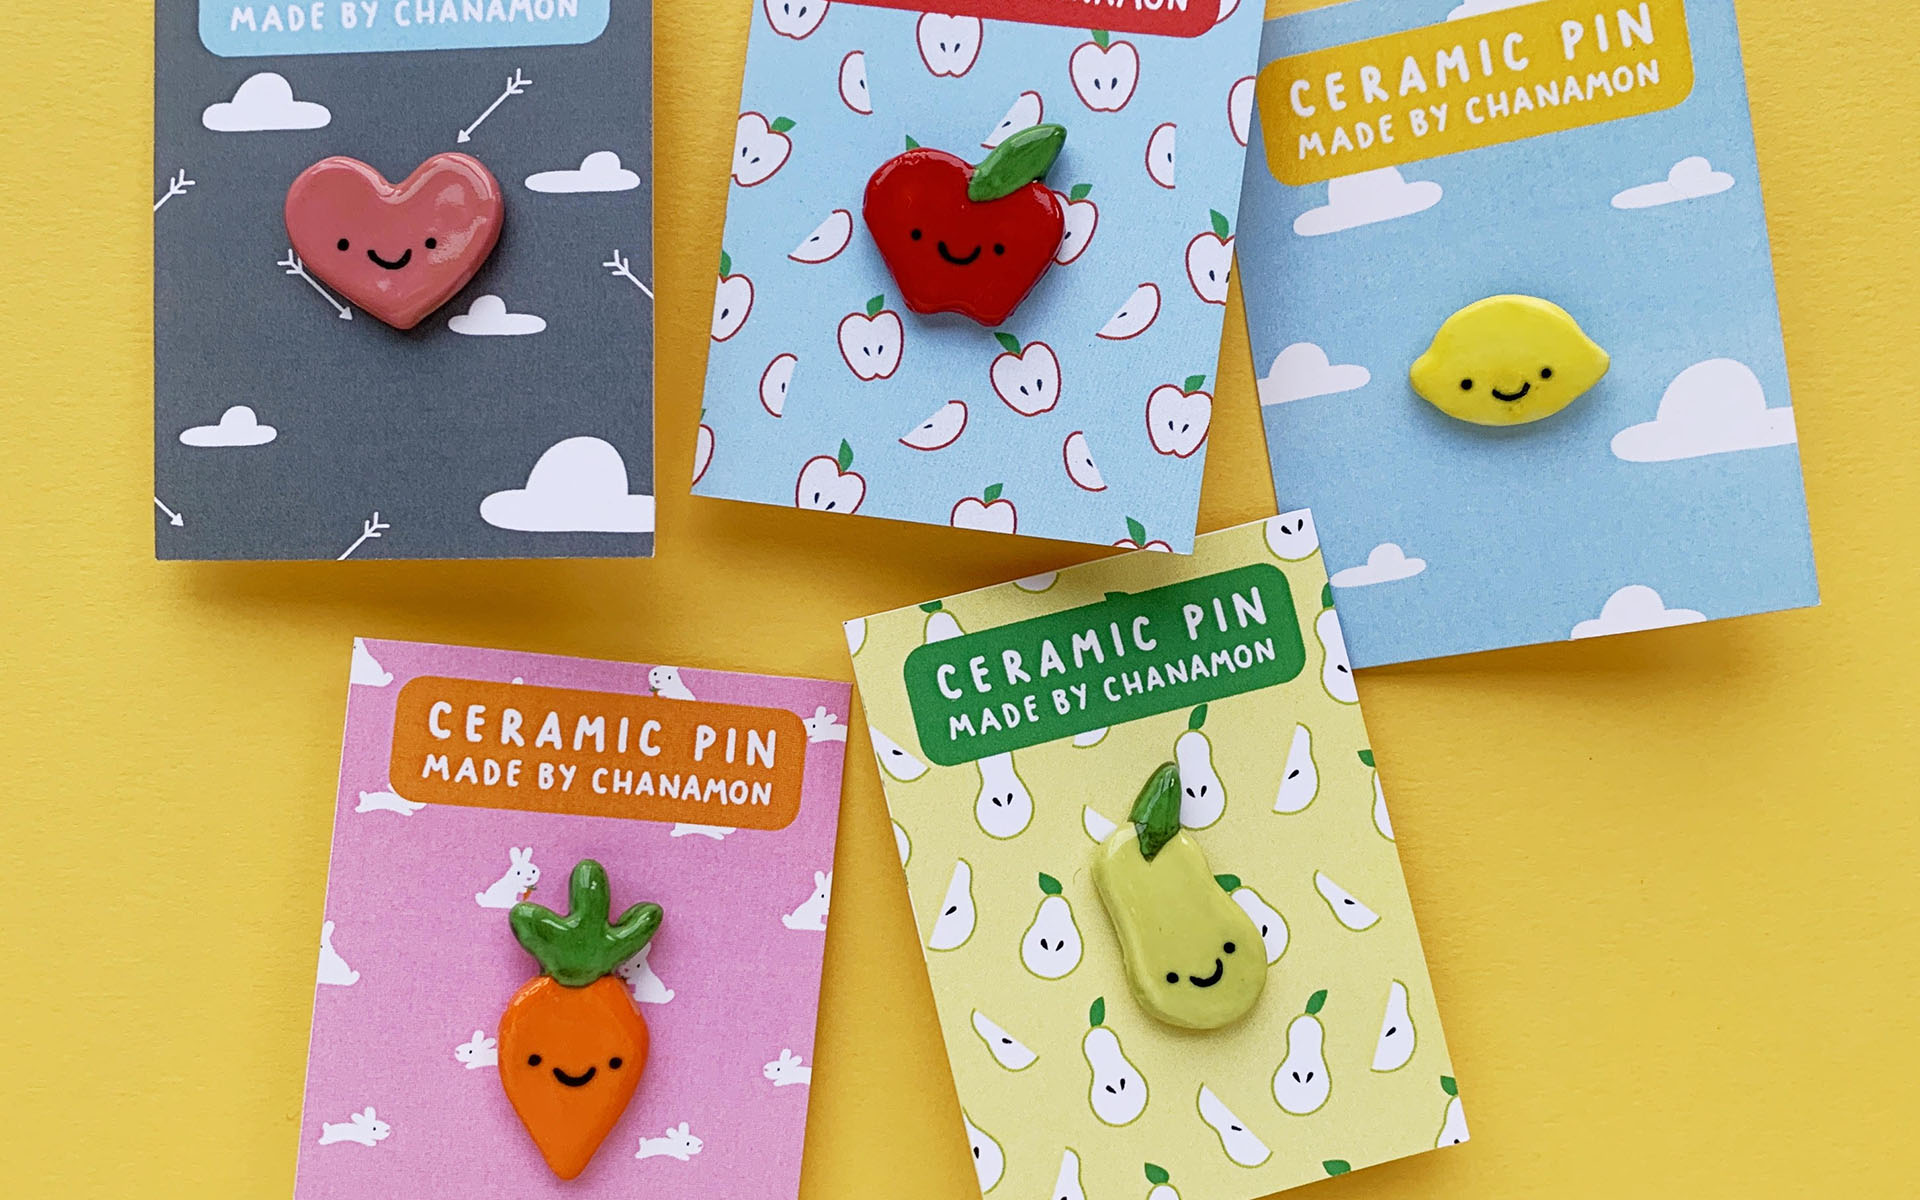 An assortment of enamel pins from Made by Chanamon